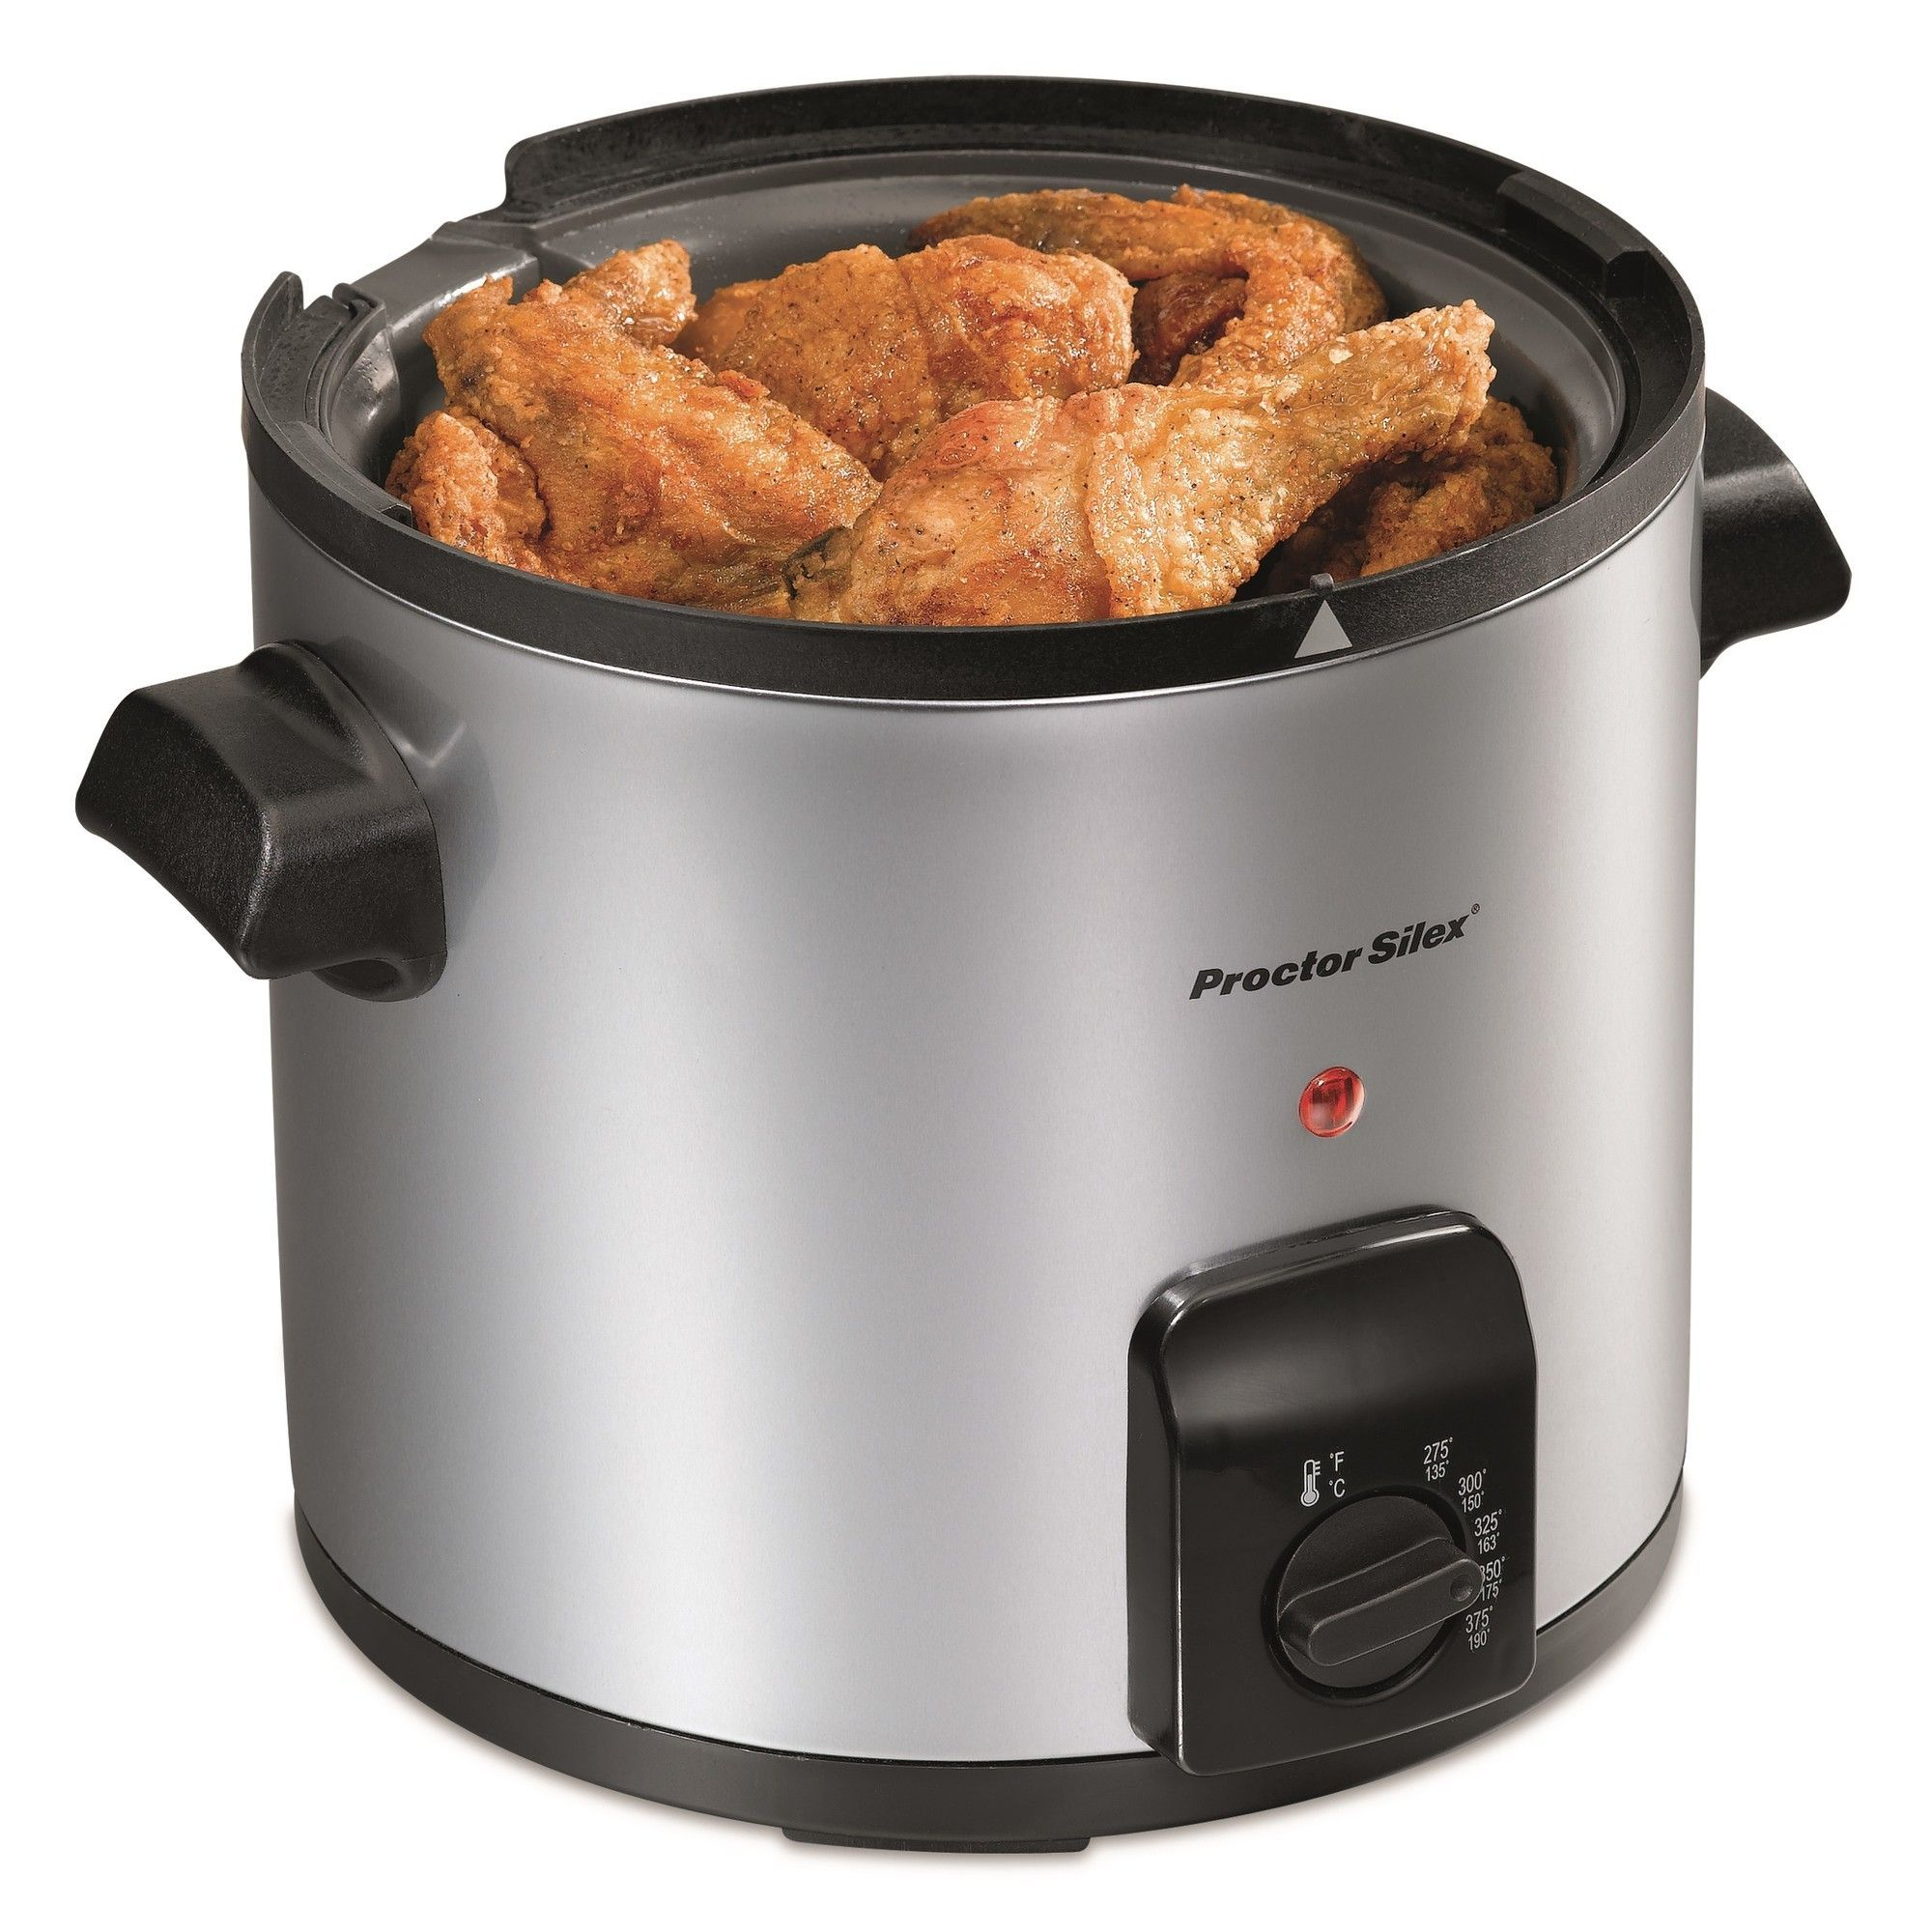 Uncategorized Online Shopping Sites For Kitchen Appliances In India 1 liter deep fryer fryer